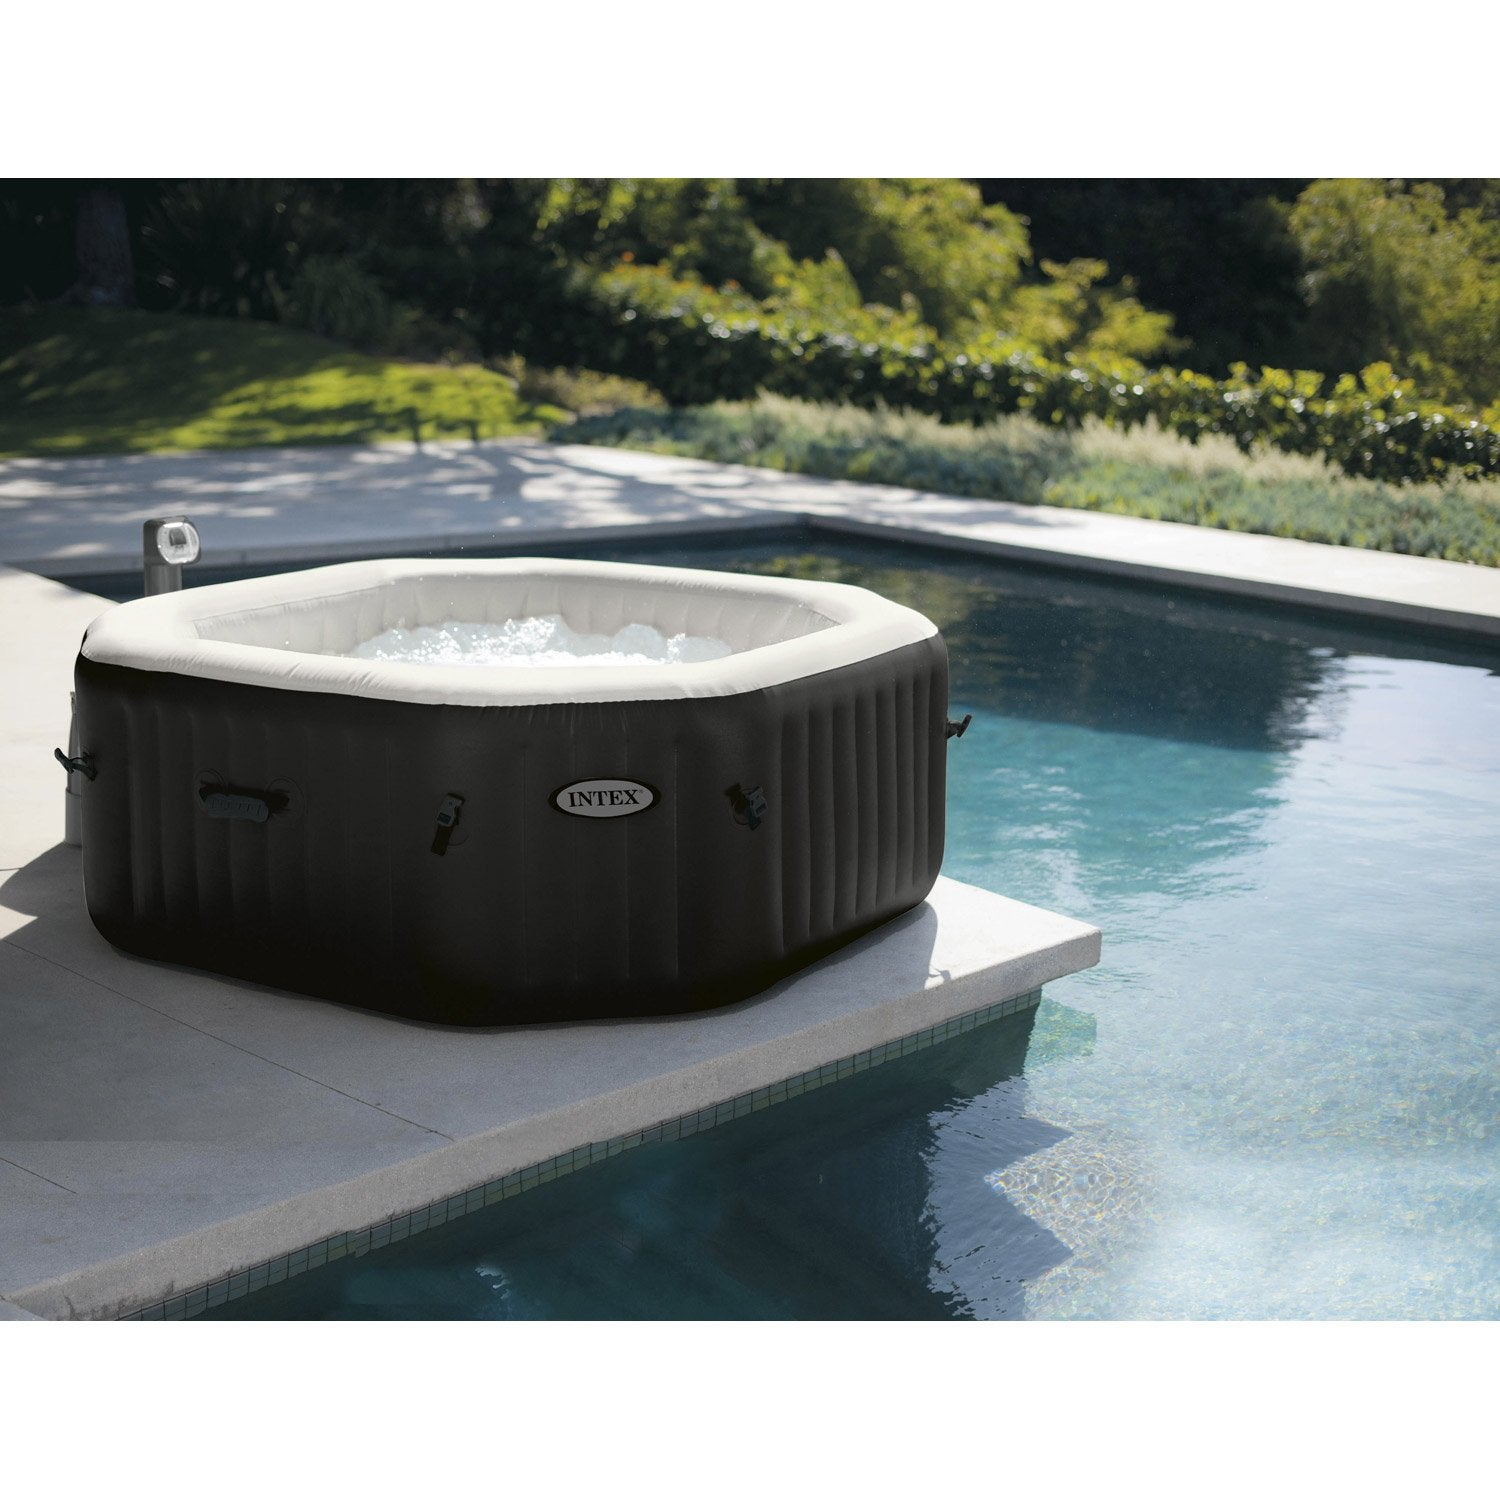 Spa gonflable intex purespa bulles octogonale 6 places assises leroy merlin - Prix d un jacuzzi exterieur ...